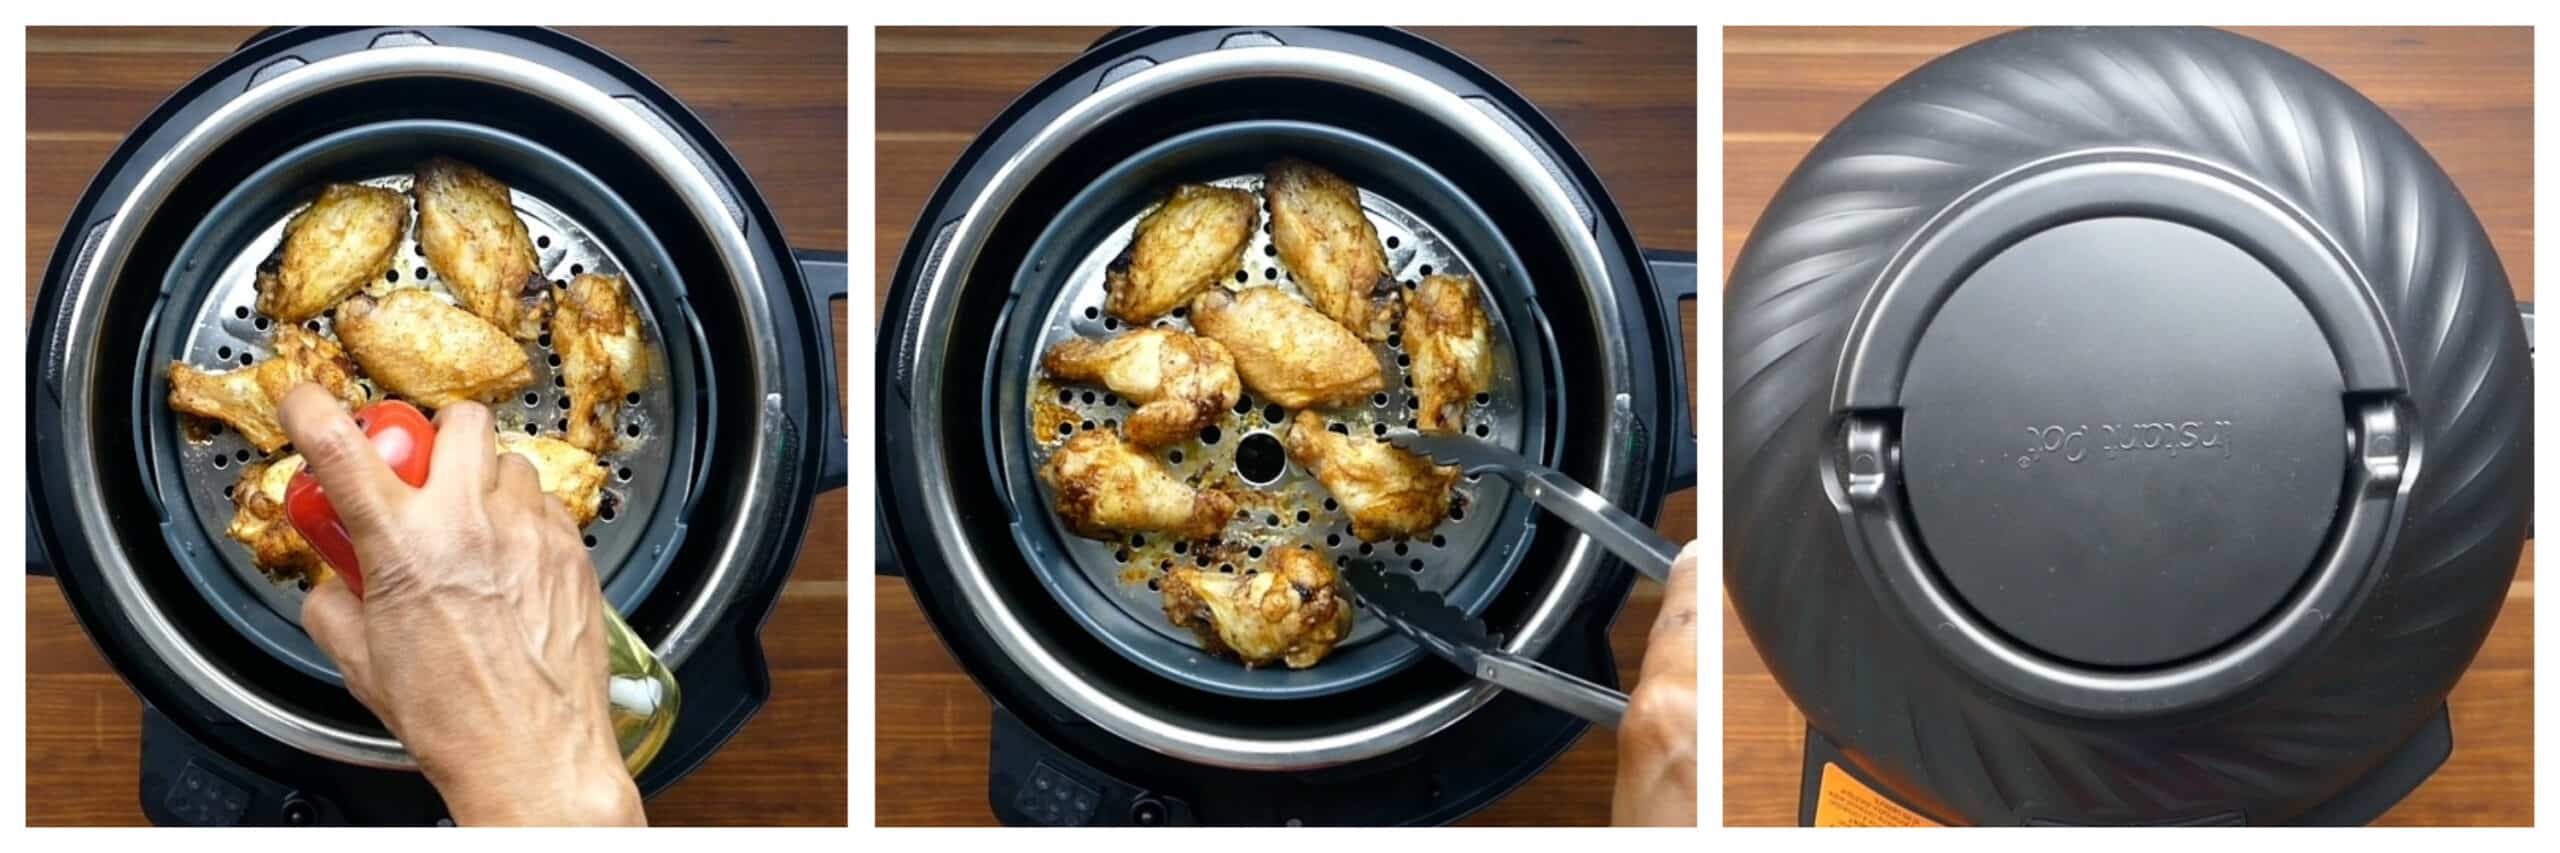 Instant Pot Air Fryer Chicken Wings Instructions collage - wings sprayed, wings turned, lid closed